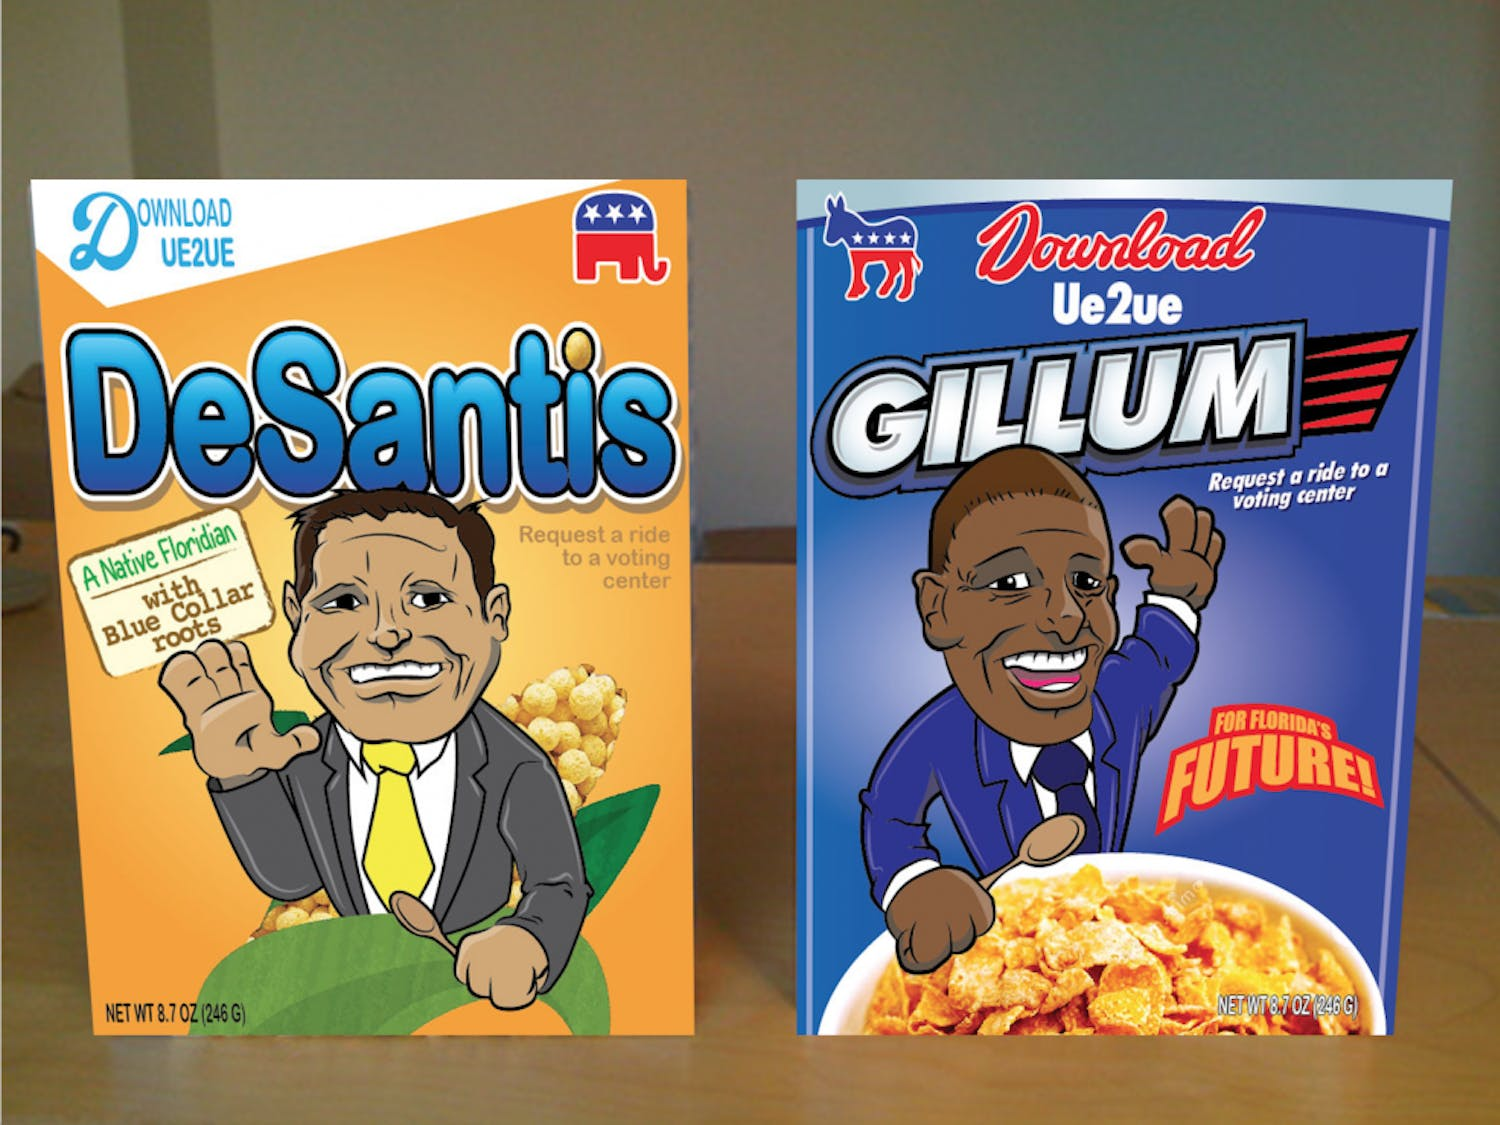 The governor-themed cereal boxes designed for anyone who donates more than $40